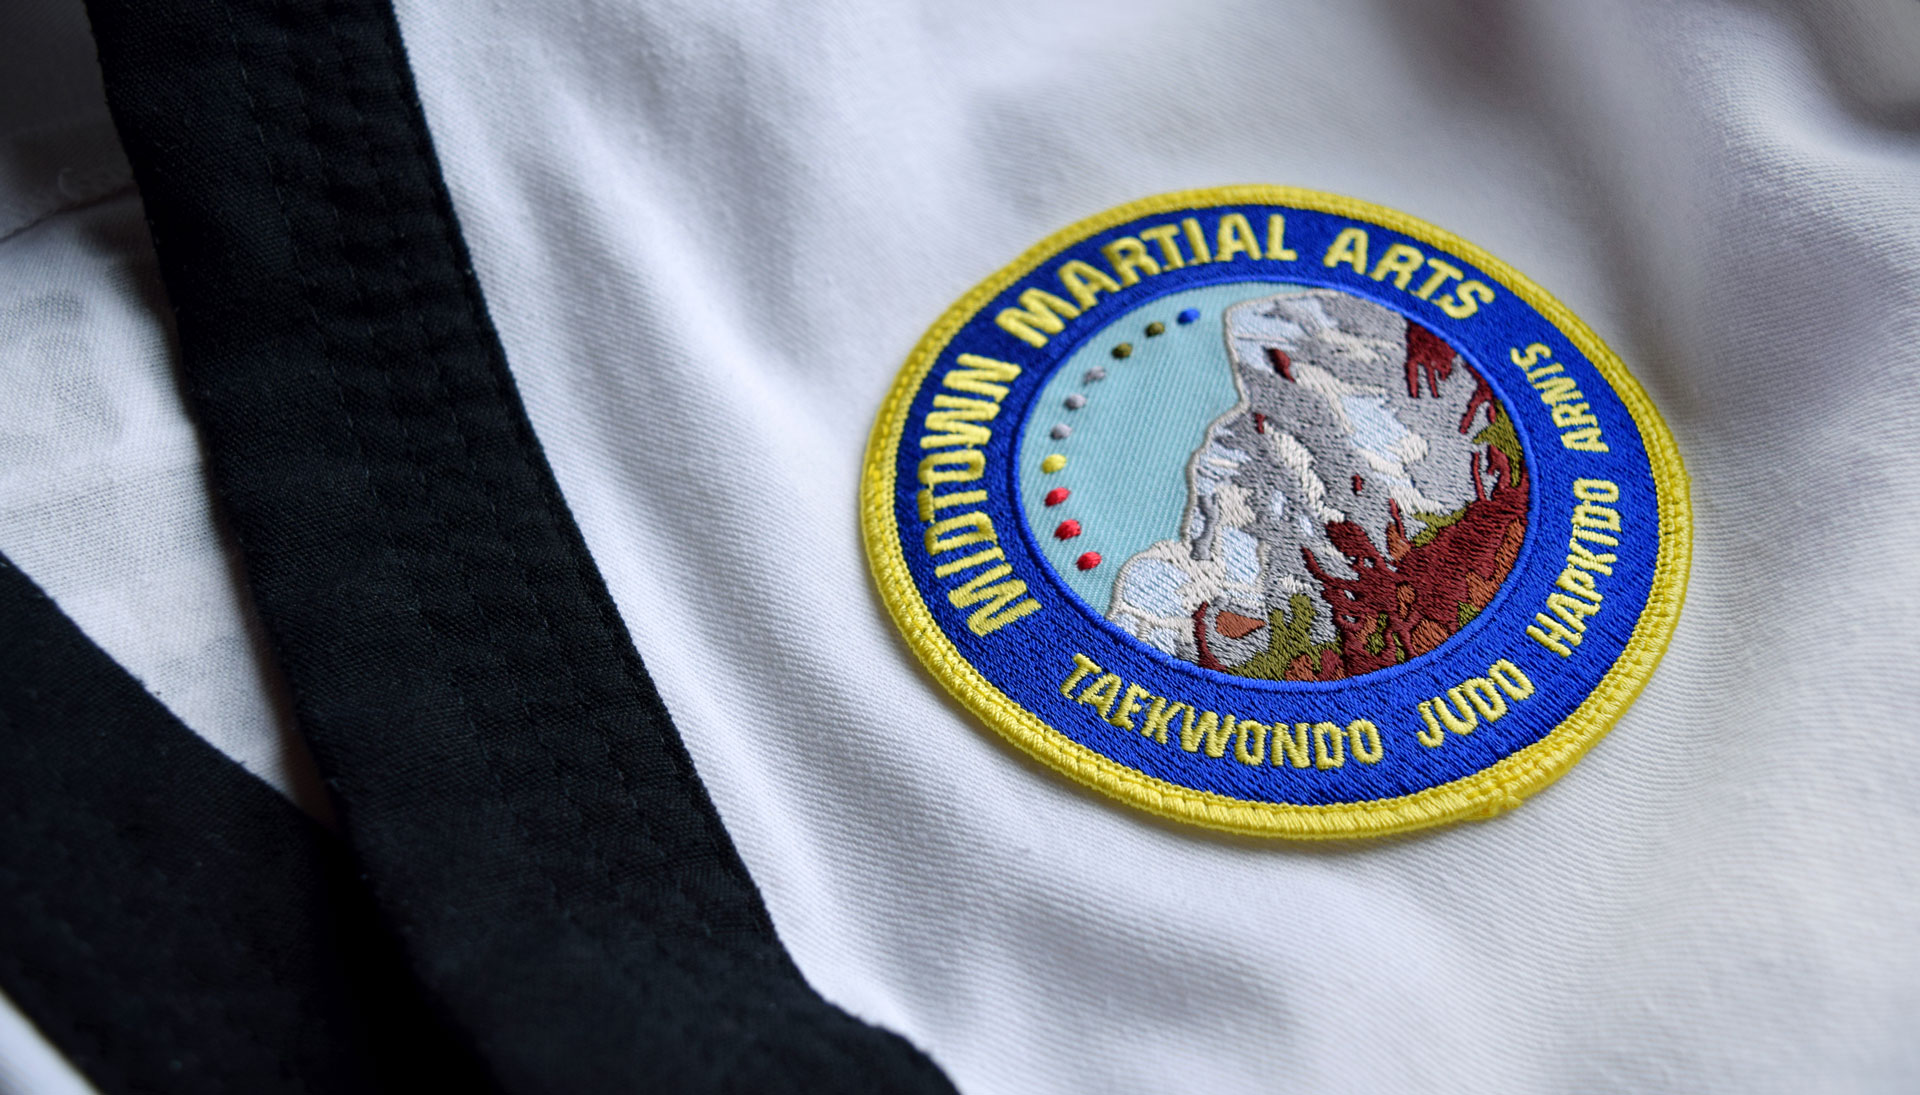 Midtown Martial Arts Patch